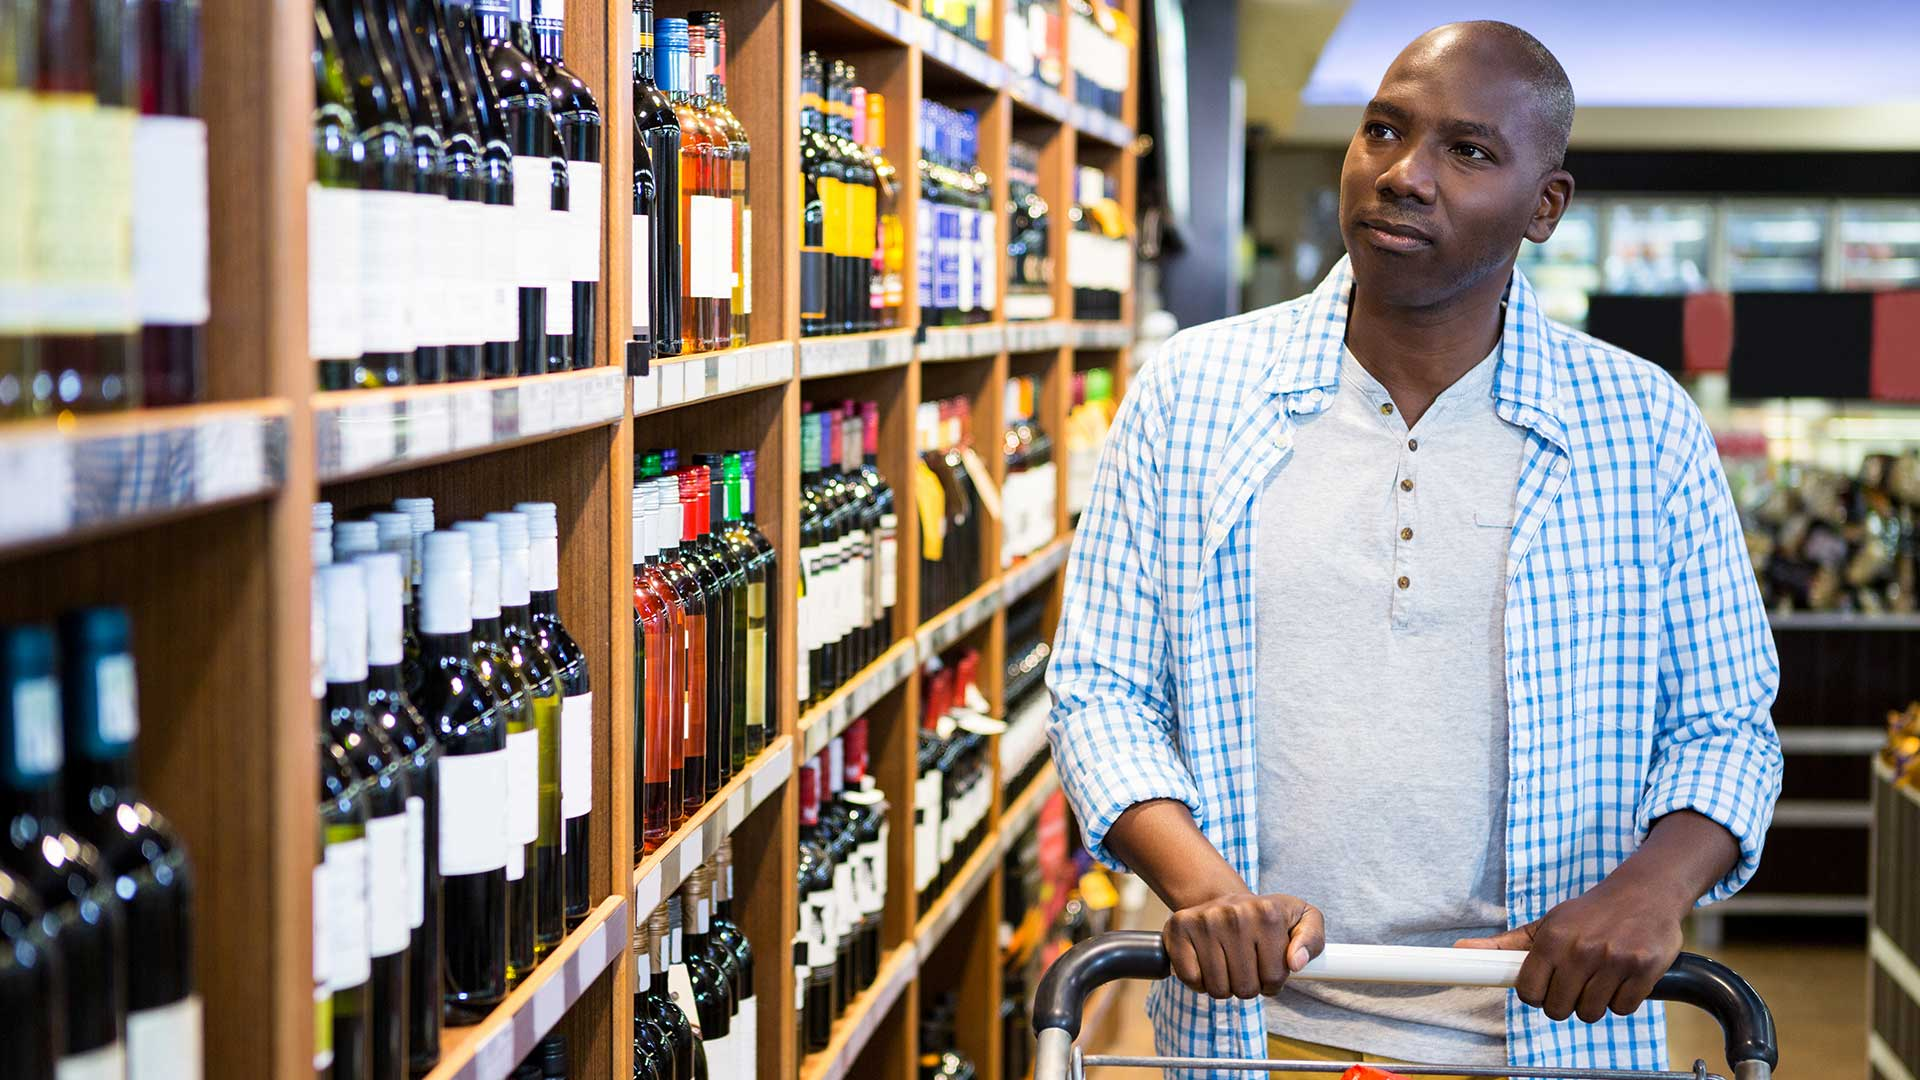 Area-Man-Finds-Peace-Aimlessly-Wandering-the-Isles-of-Total-Wine.jpg